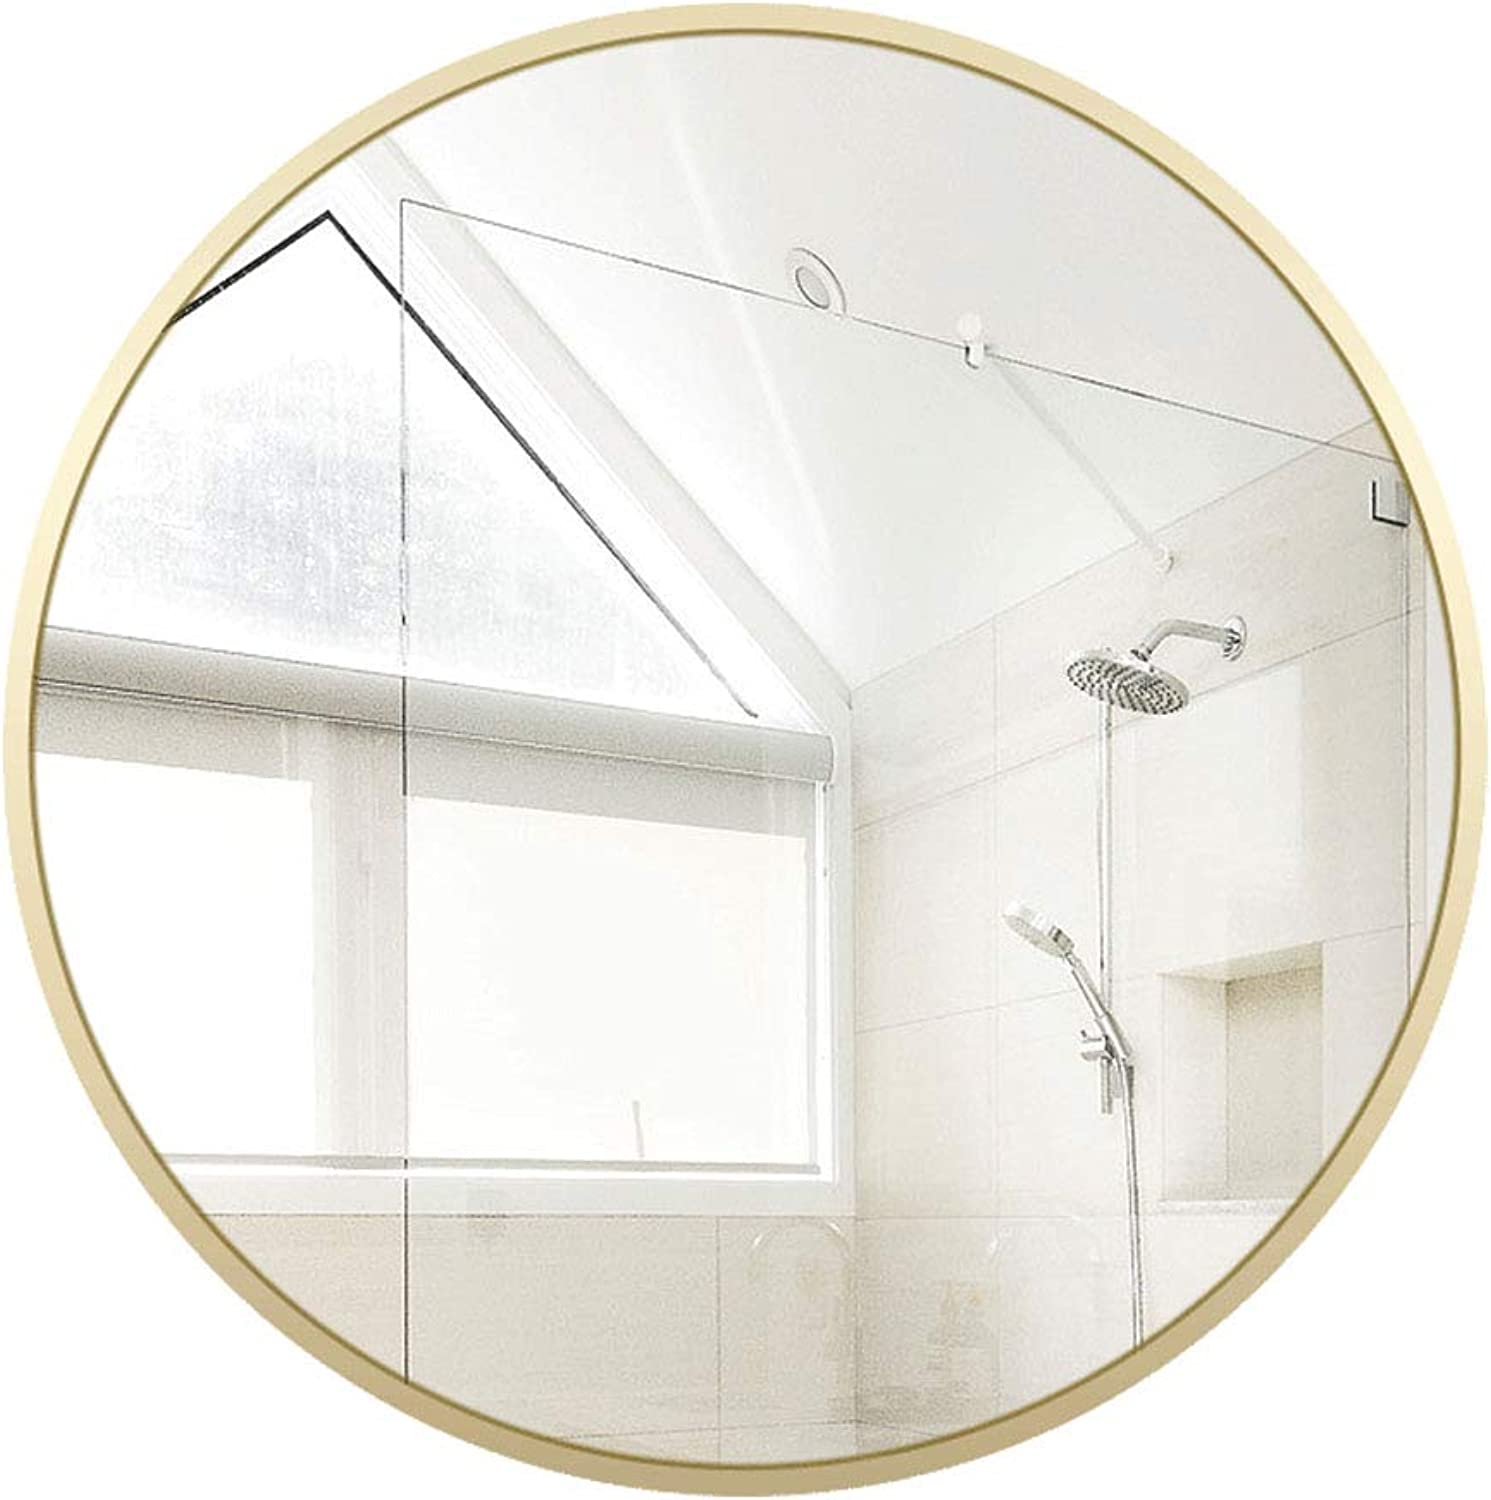 Round Bathroom Mirror Circle Wall-Mounted Wooden Frame Mirror Makeup Shaving Wall Mirror 50-70cm Available Wood color